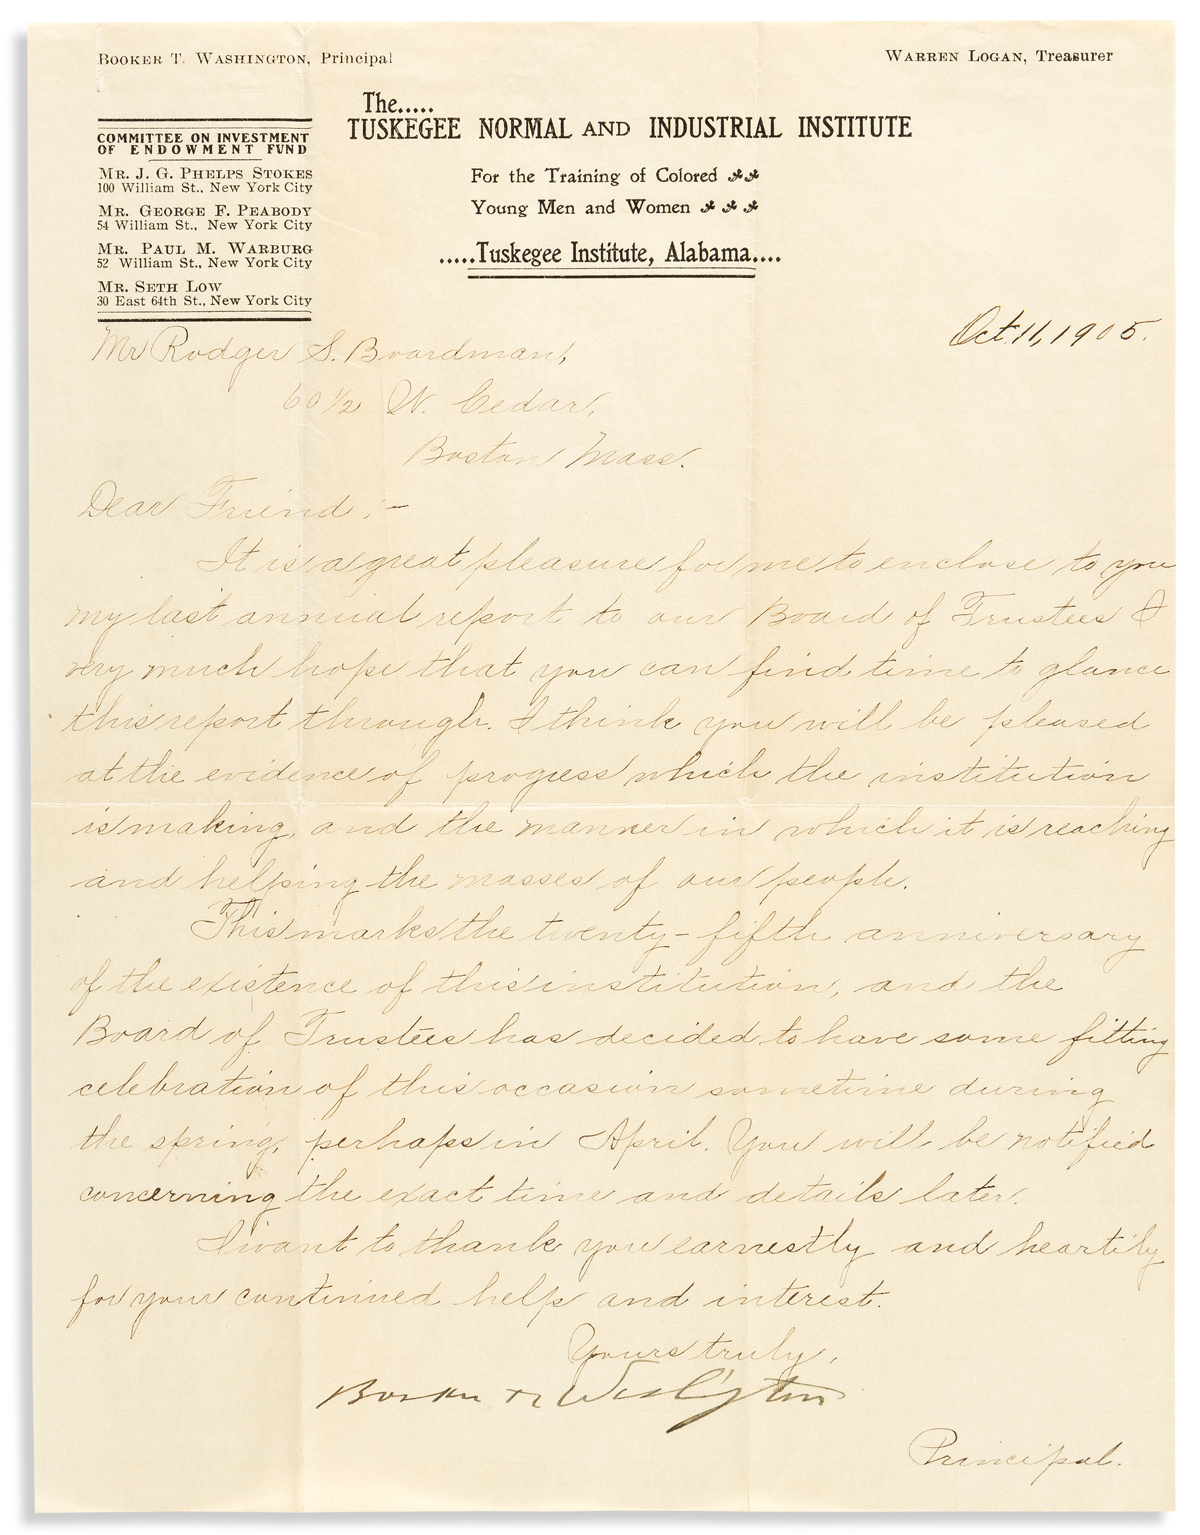 WASHINGTON, BOOKER T. Letter Signed, to Rodger S. Boardman,